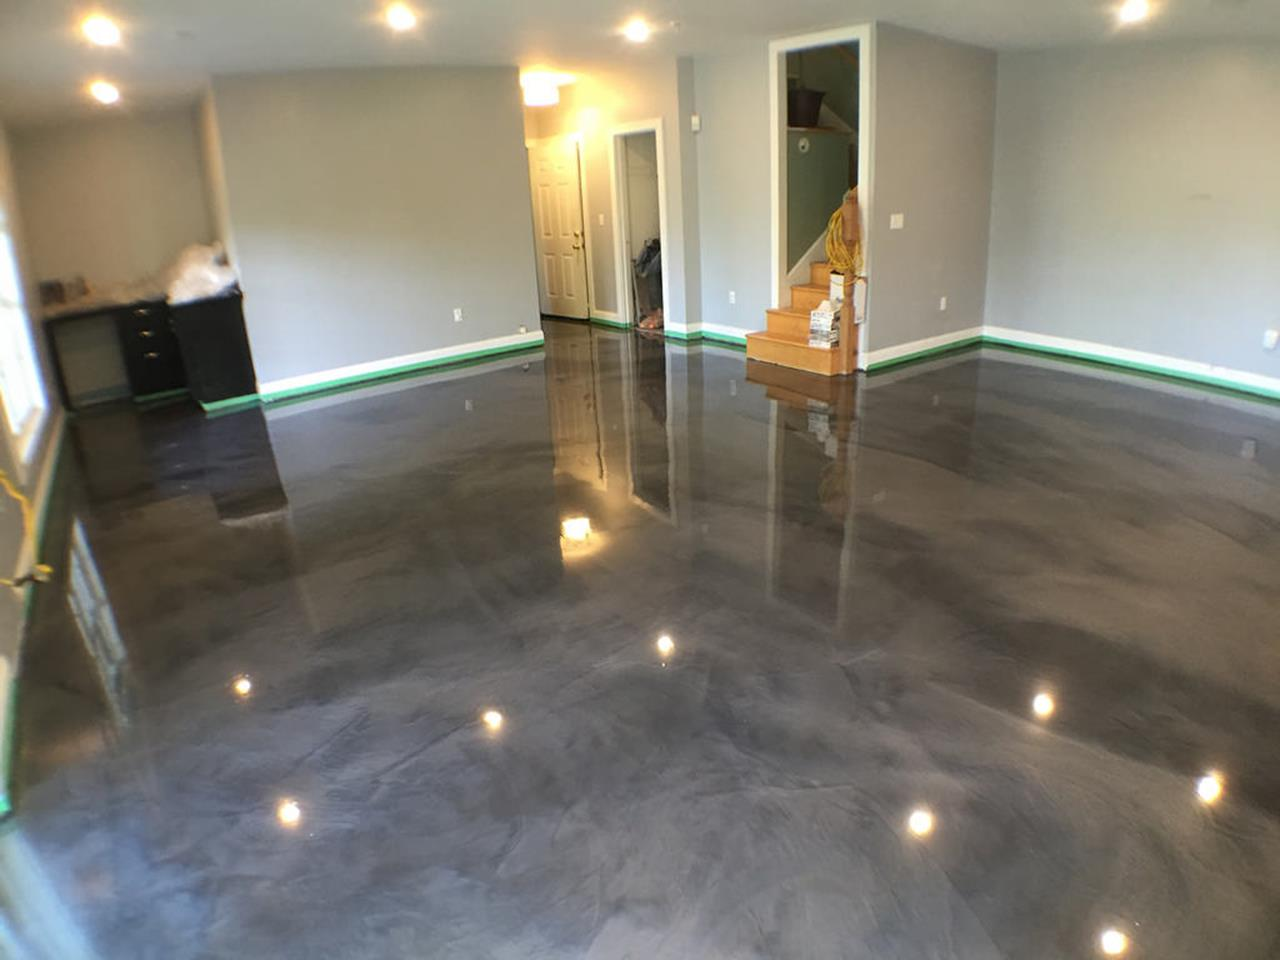 Basement Concrete Floor Paint Color Ideas 2